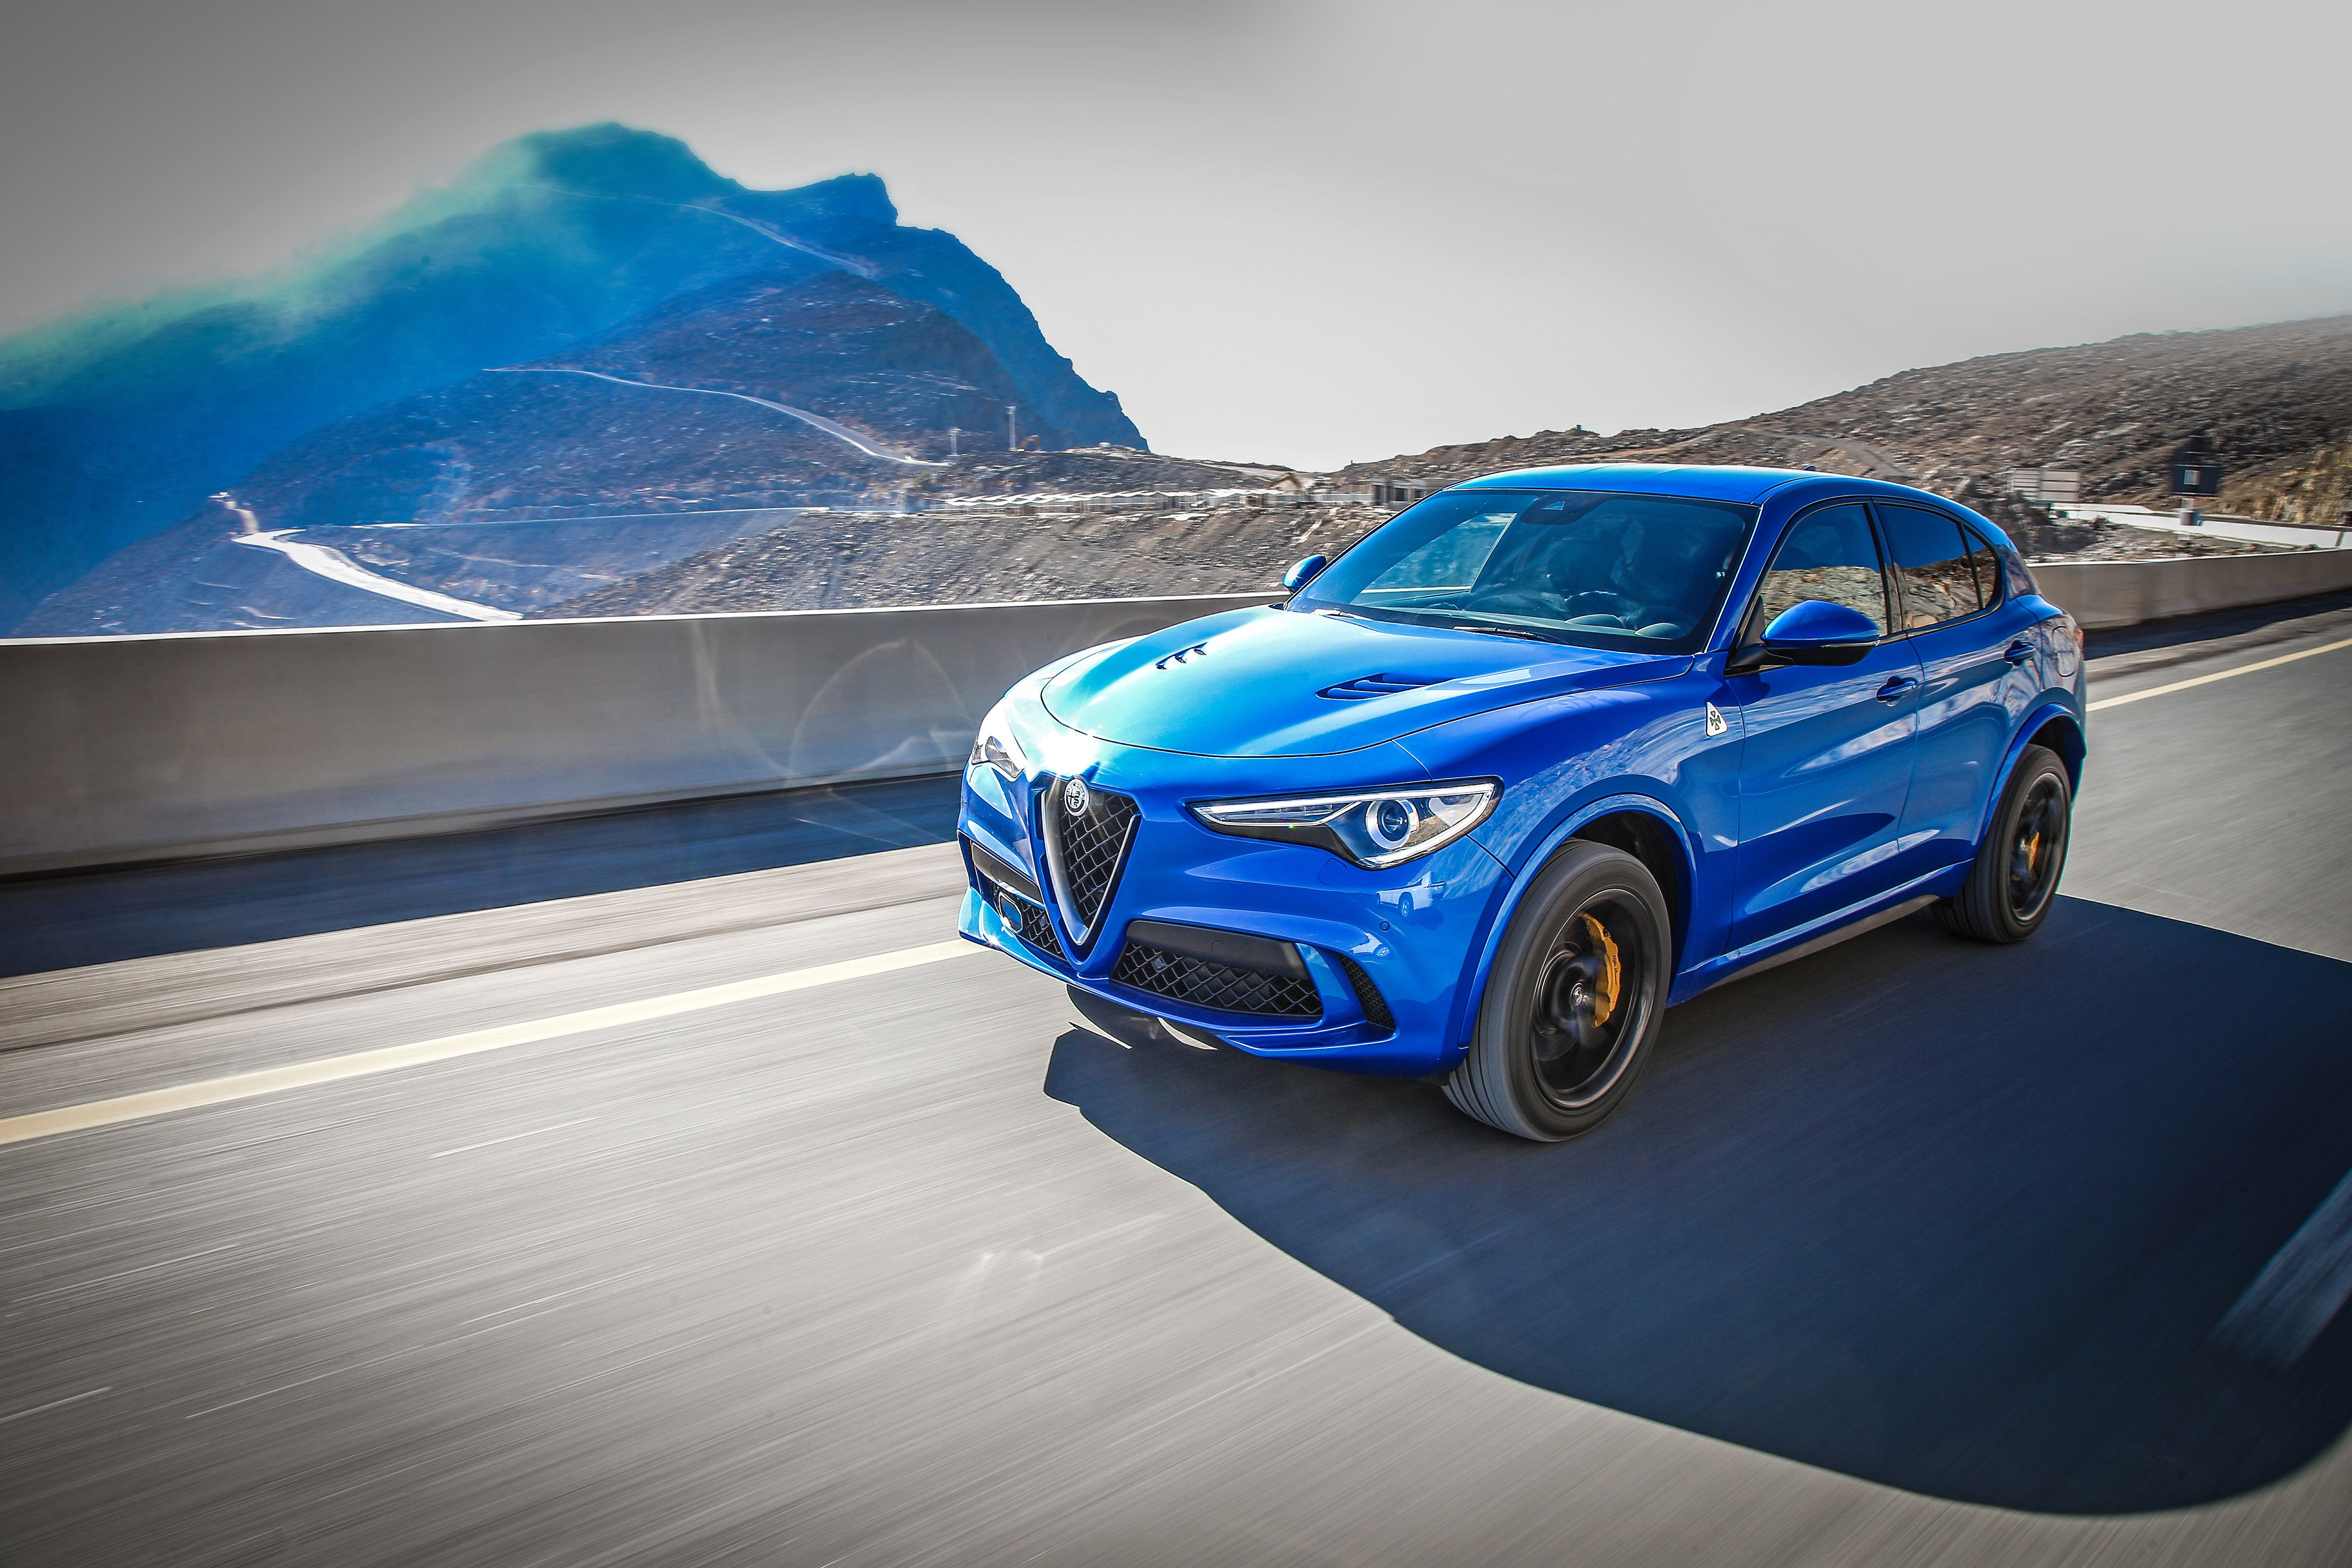 2020 Alfa Romeo Stelvio Quadrifoglio Review, Pricing, and